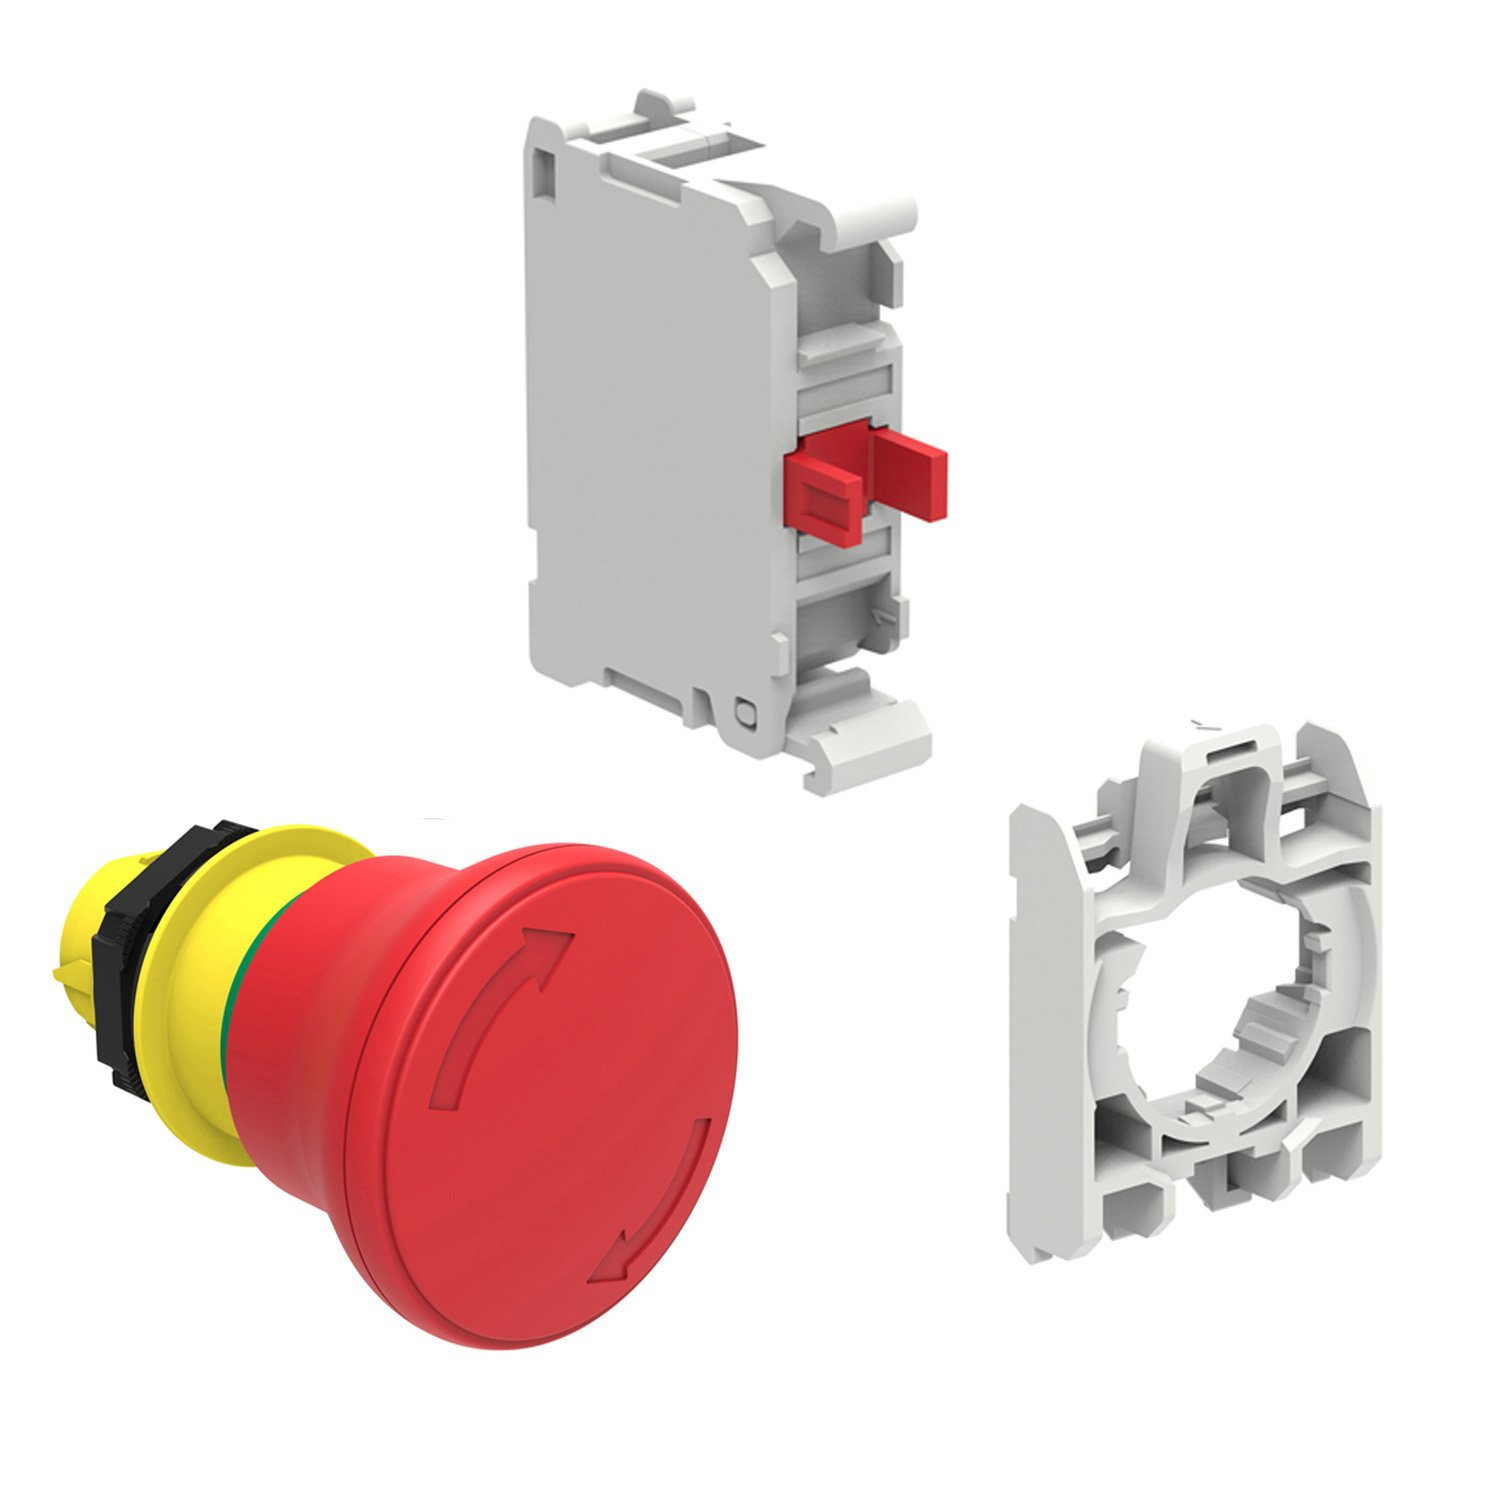 40 mm Twist-to-Release Mushroom Head NC Contact and Contact Holder ASI LPCB6644KIT Emergency Stop Switch Kit with 40 mm/Red/E-Stop Push Button